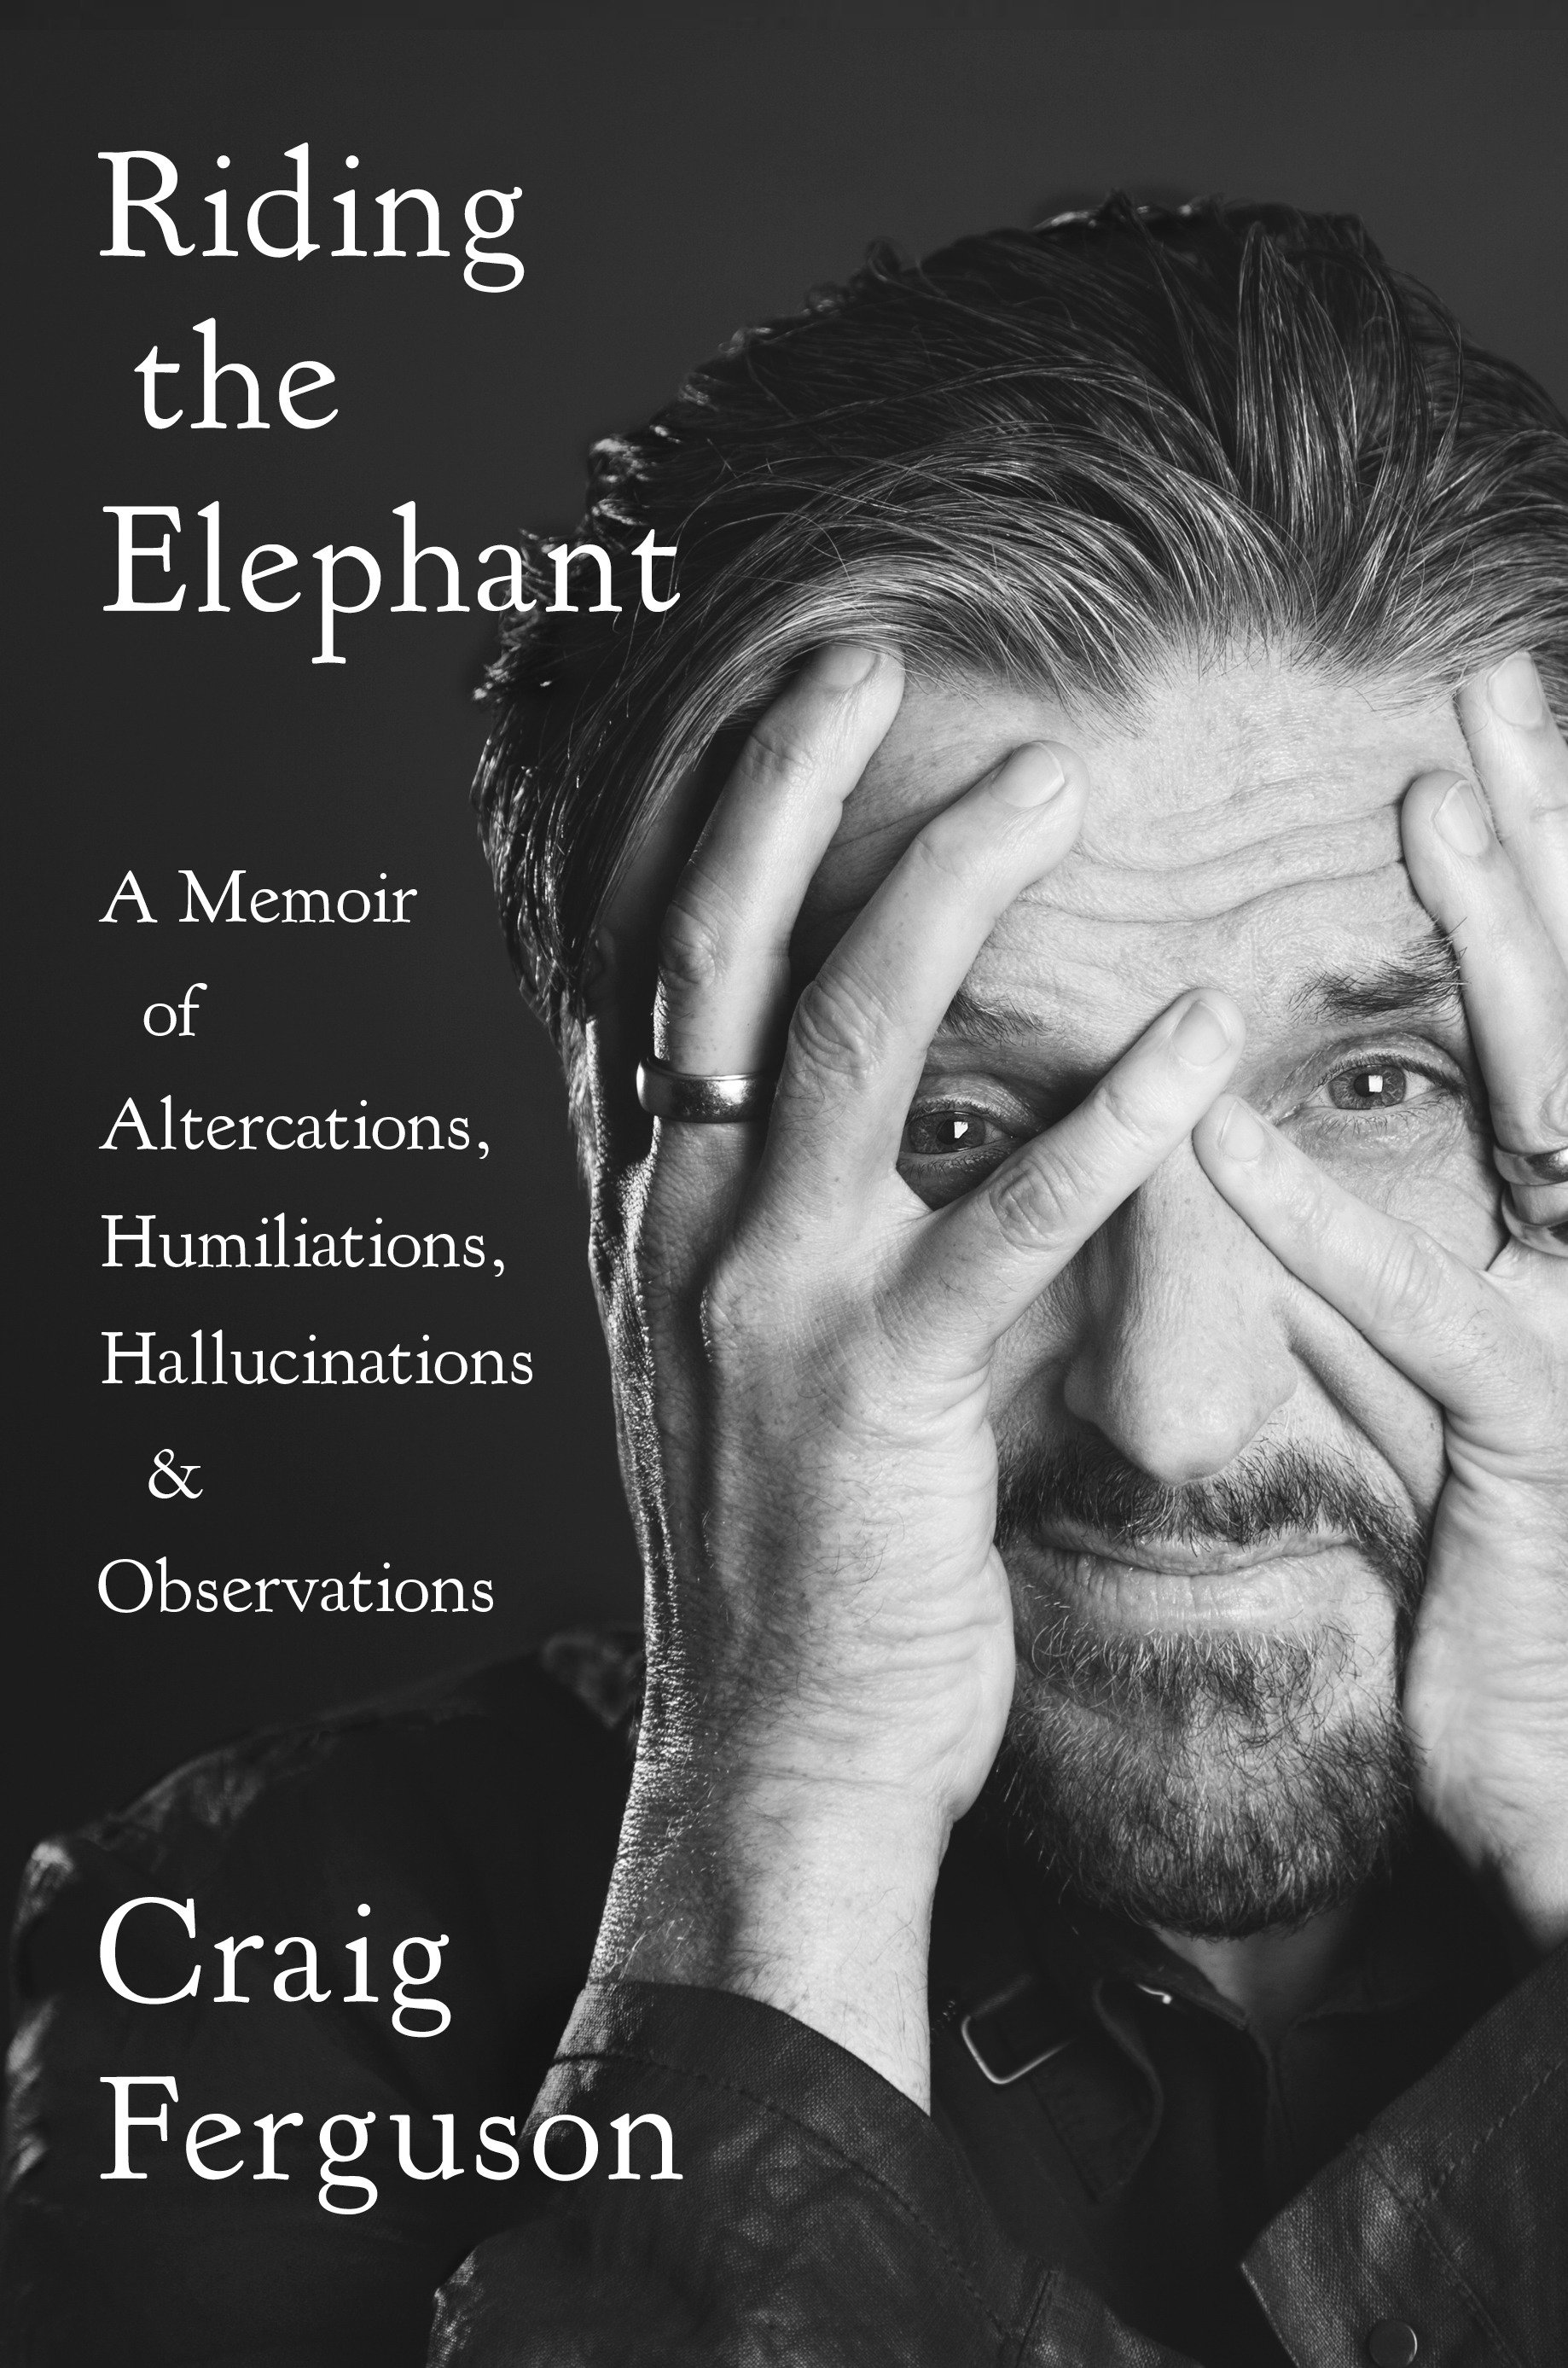 Riding the elephant a memoir of altercations, humiliations, hallucinations, and observations cover image